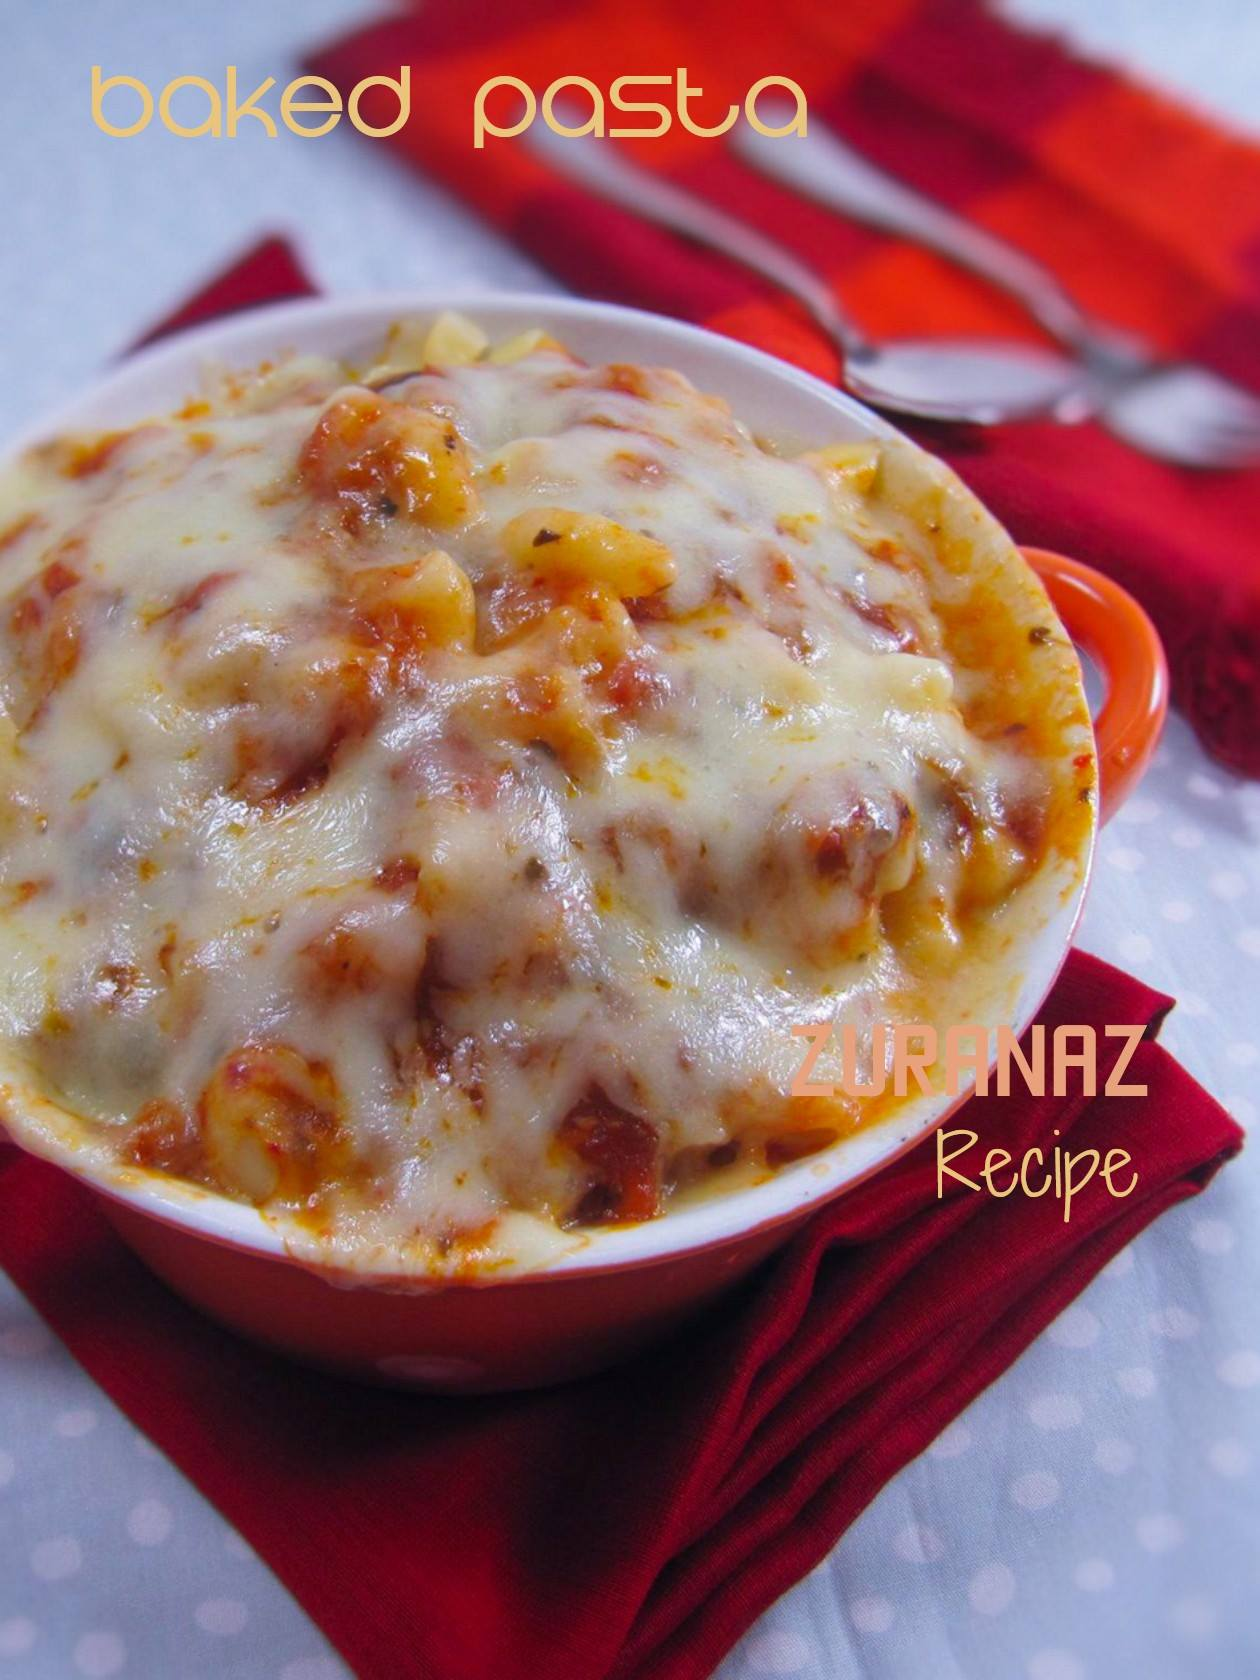 One Minute Microwave Baked Pasta Bowl